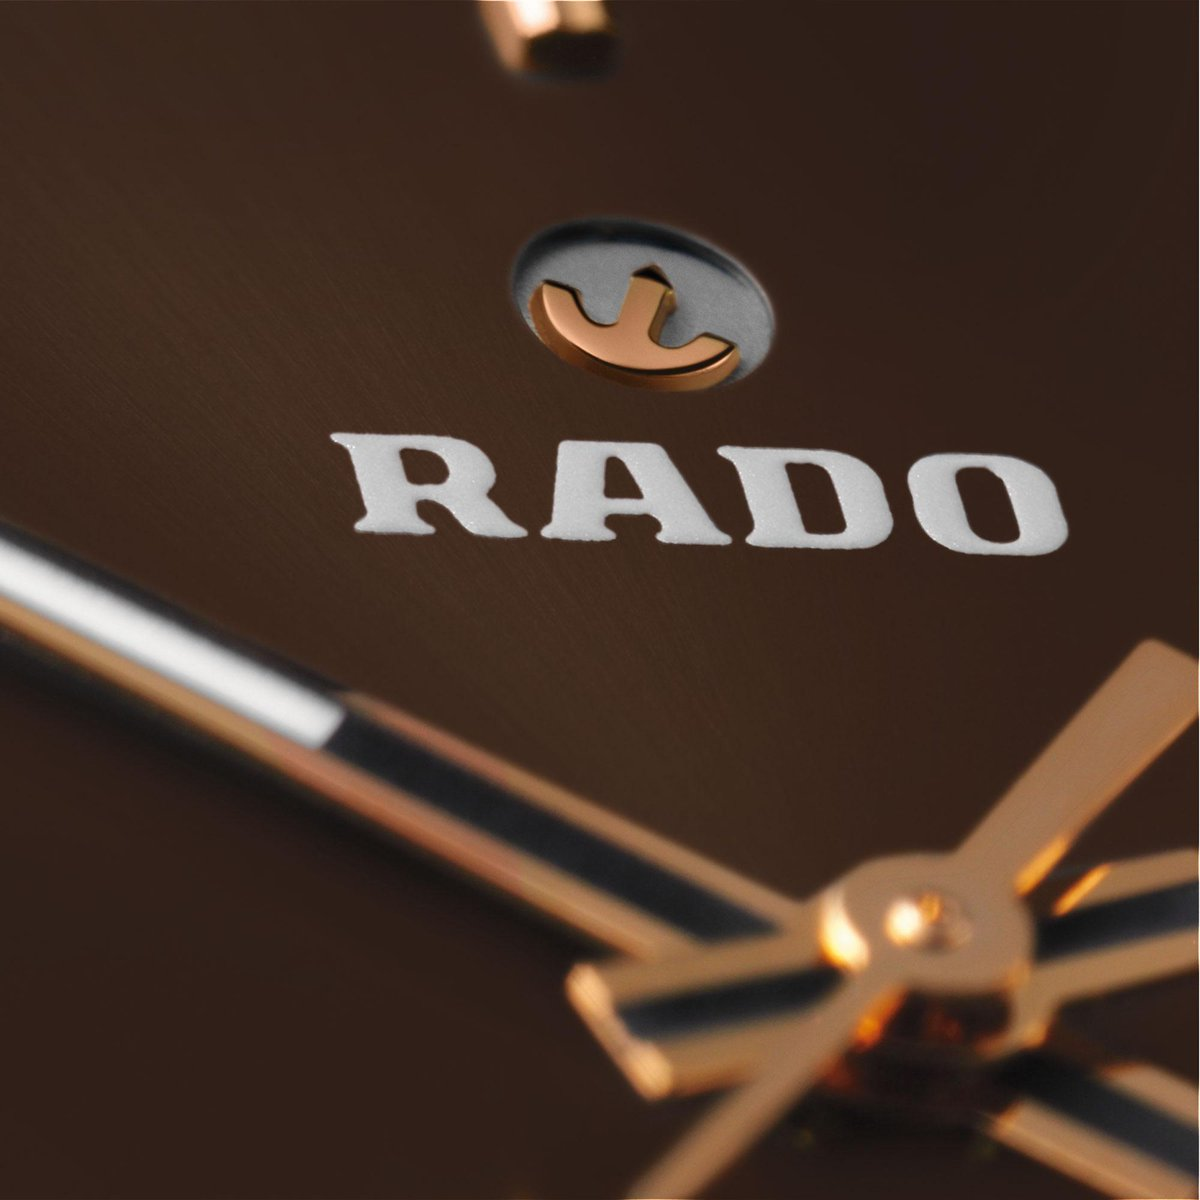 Rado on twitter didyouknow that the anchor symbol is moving and rado on twitter didyouknow that the anchor symbol is moving and can be seen on the dial of every rado automatic watch httpte0qmi7czmn biocorpaavc Choice Image